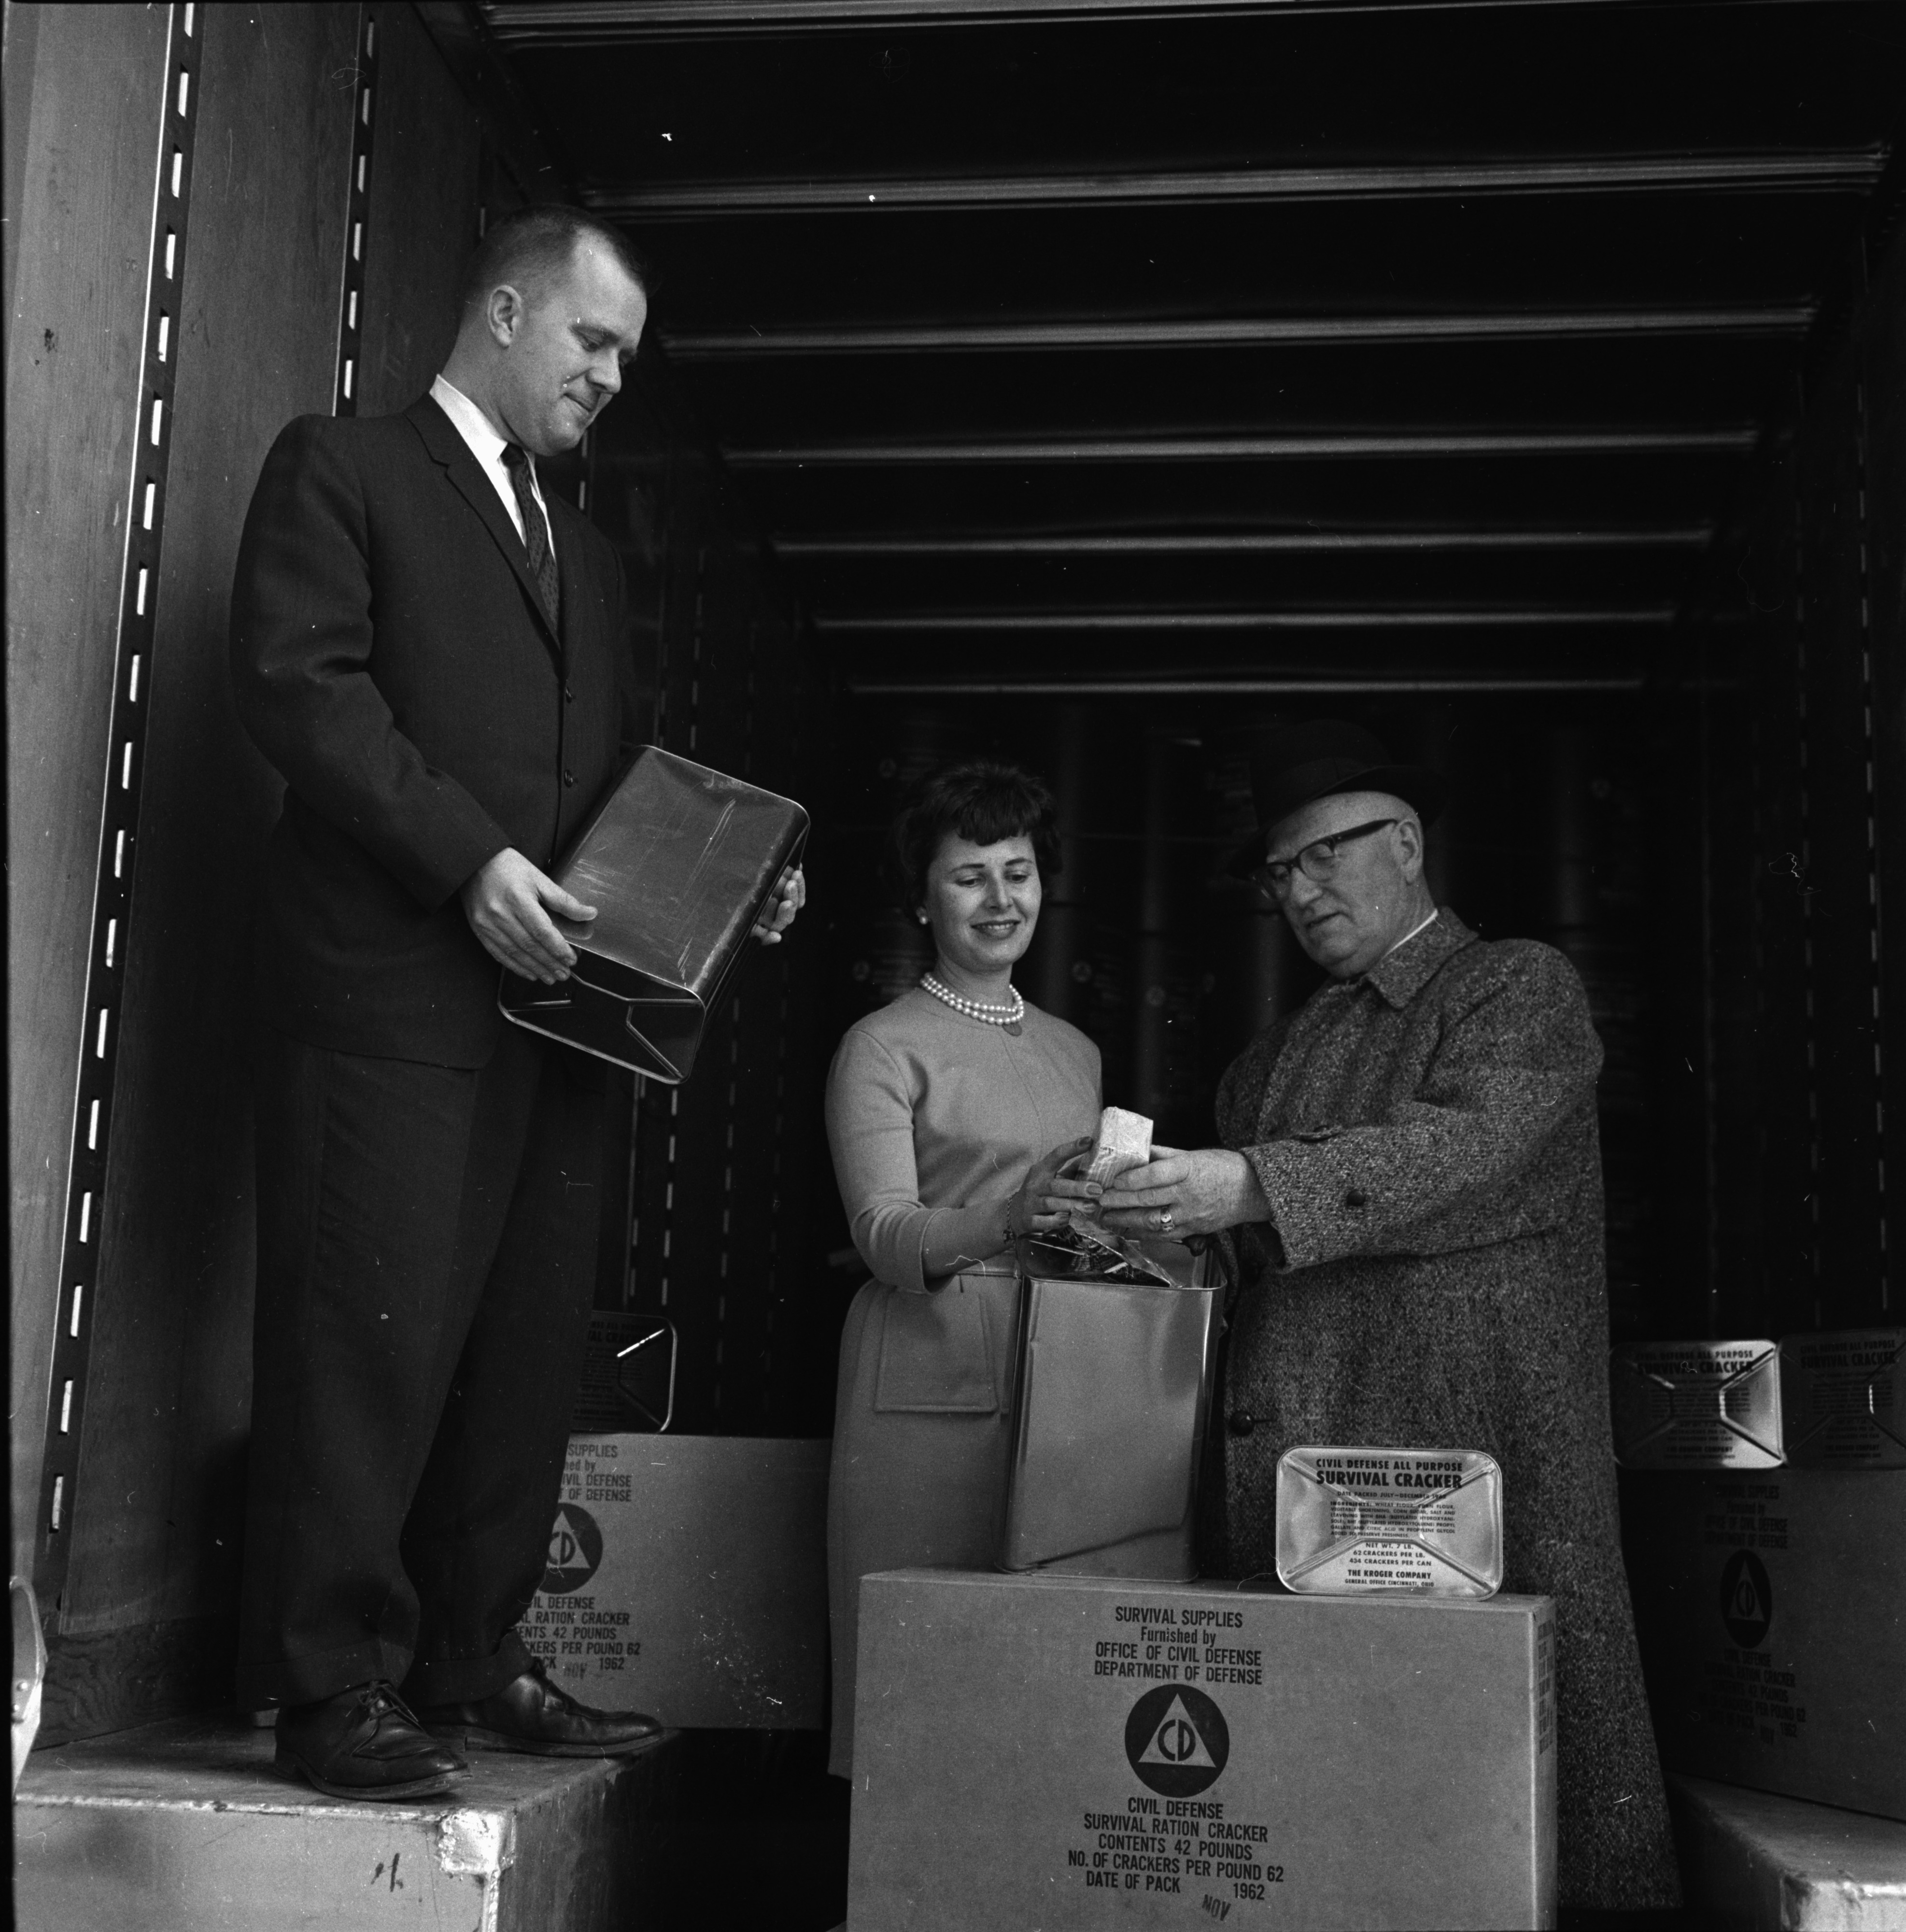 Sally Beightol and H. R. Shipman inspect supplies for fall-out shelter at Huron Towers, March 1963 image